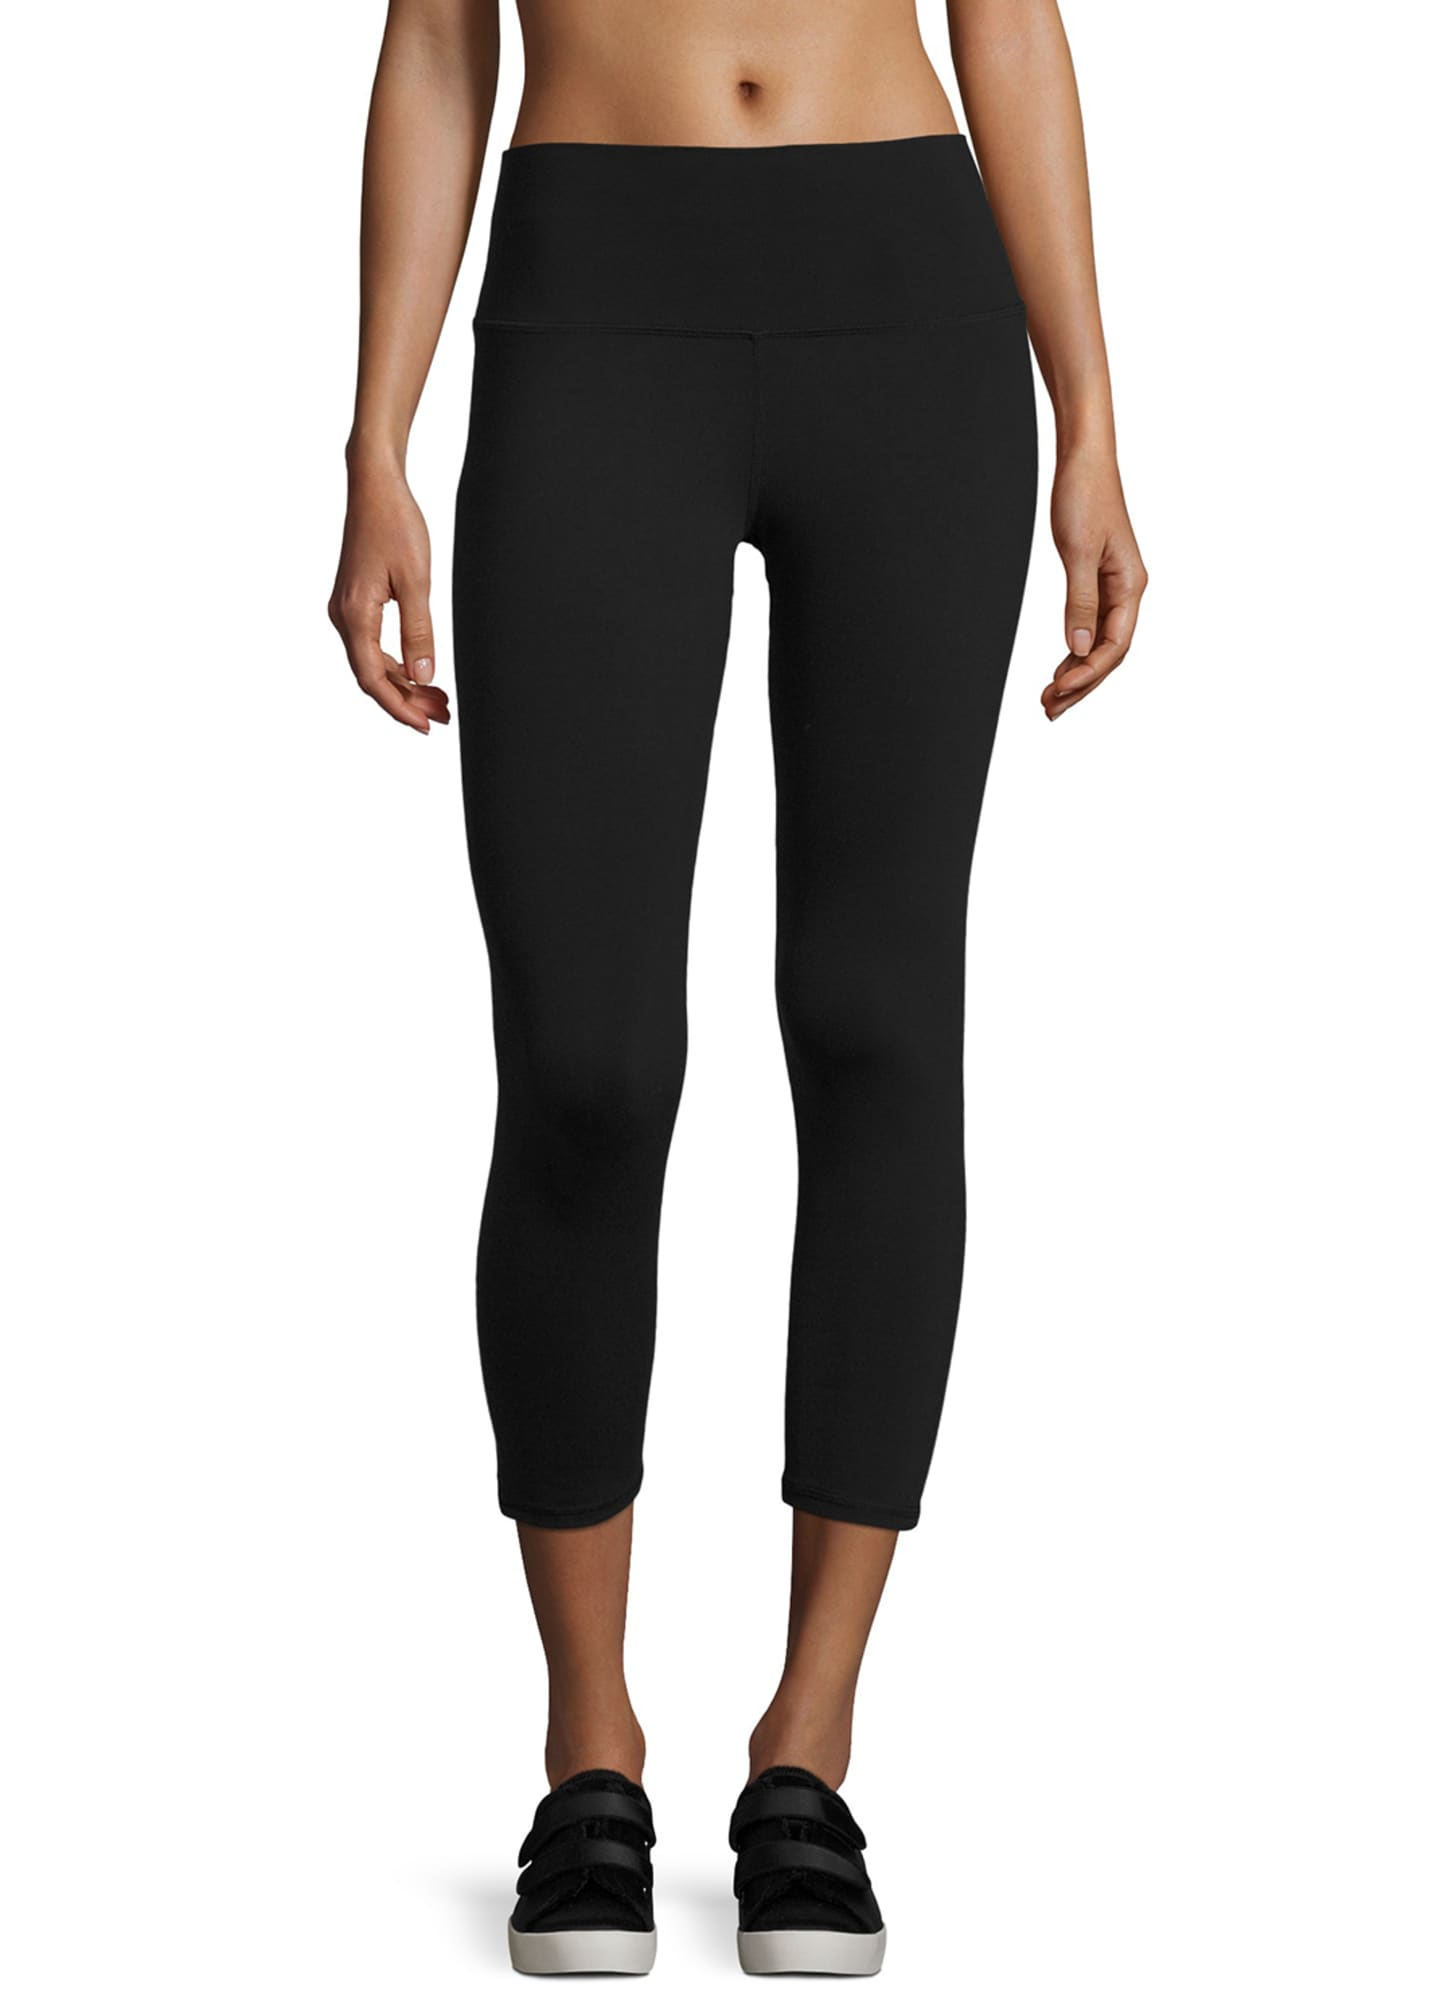 Alo Yoga High-Waist Airbrush Capri Leggings